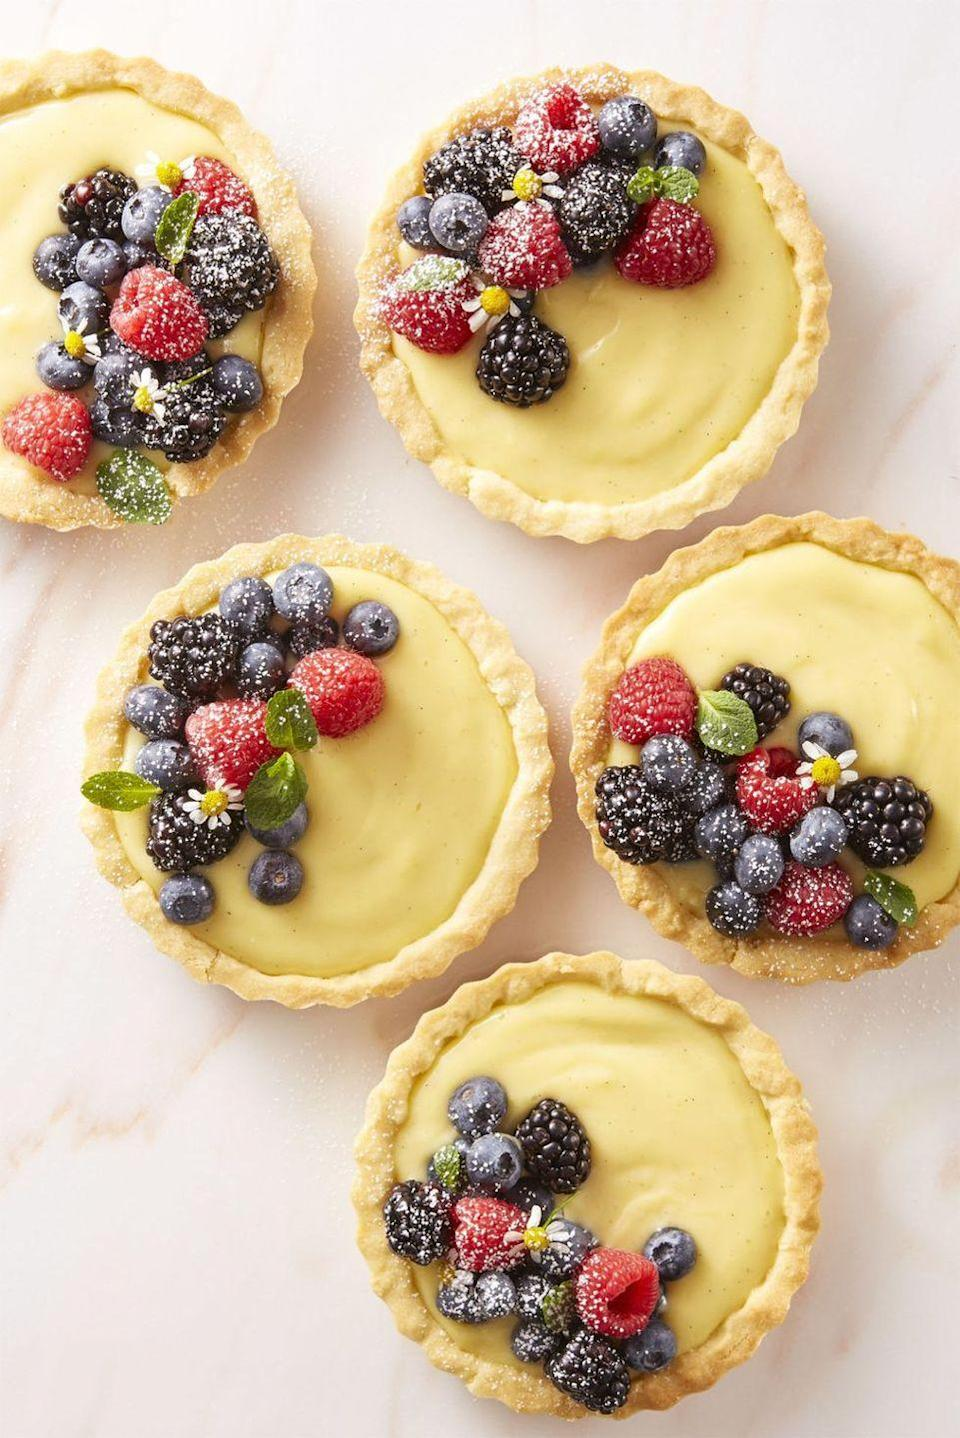 """<p>Make the most of fresh berries on top of these dainty custard-filled tarts.</p><p><em><a href=""""https://www.goodhousekeeping.com/food-recipes/dessert/a43667/very-berry-cream-tartlets-recipe/"""" rel=""""nofollow noopener"""" target=""""_blank"""" data-ylk=""""slk:Get the recipe for Very Berry Cream Tartlets »"""" class=""""link rapid-noclick-resp"""">Get the recipe for Very Berry Cream Tartlets »</a></em></p>"""